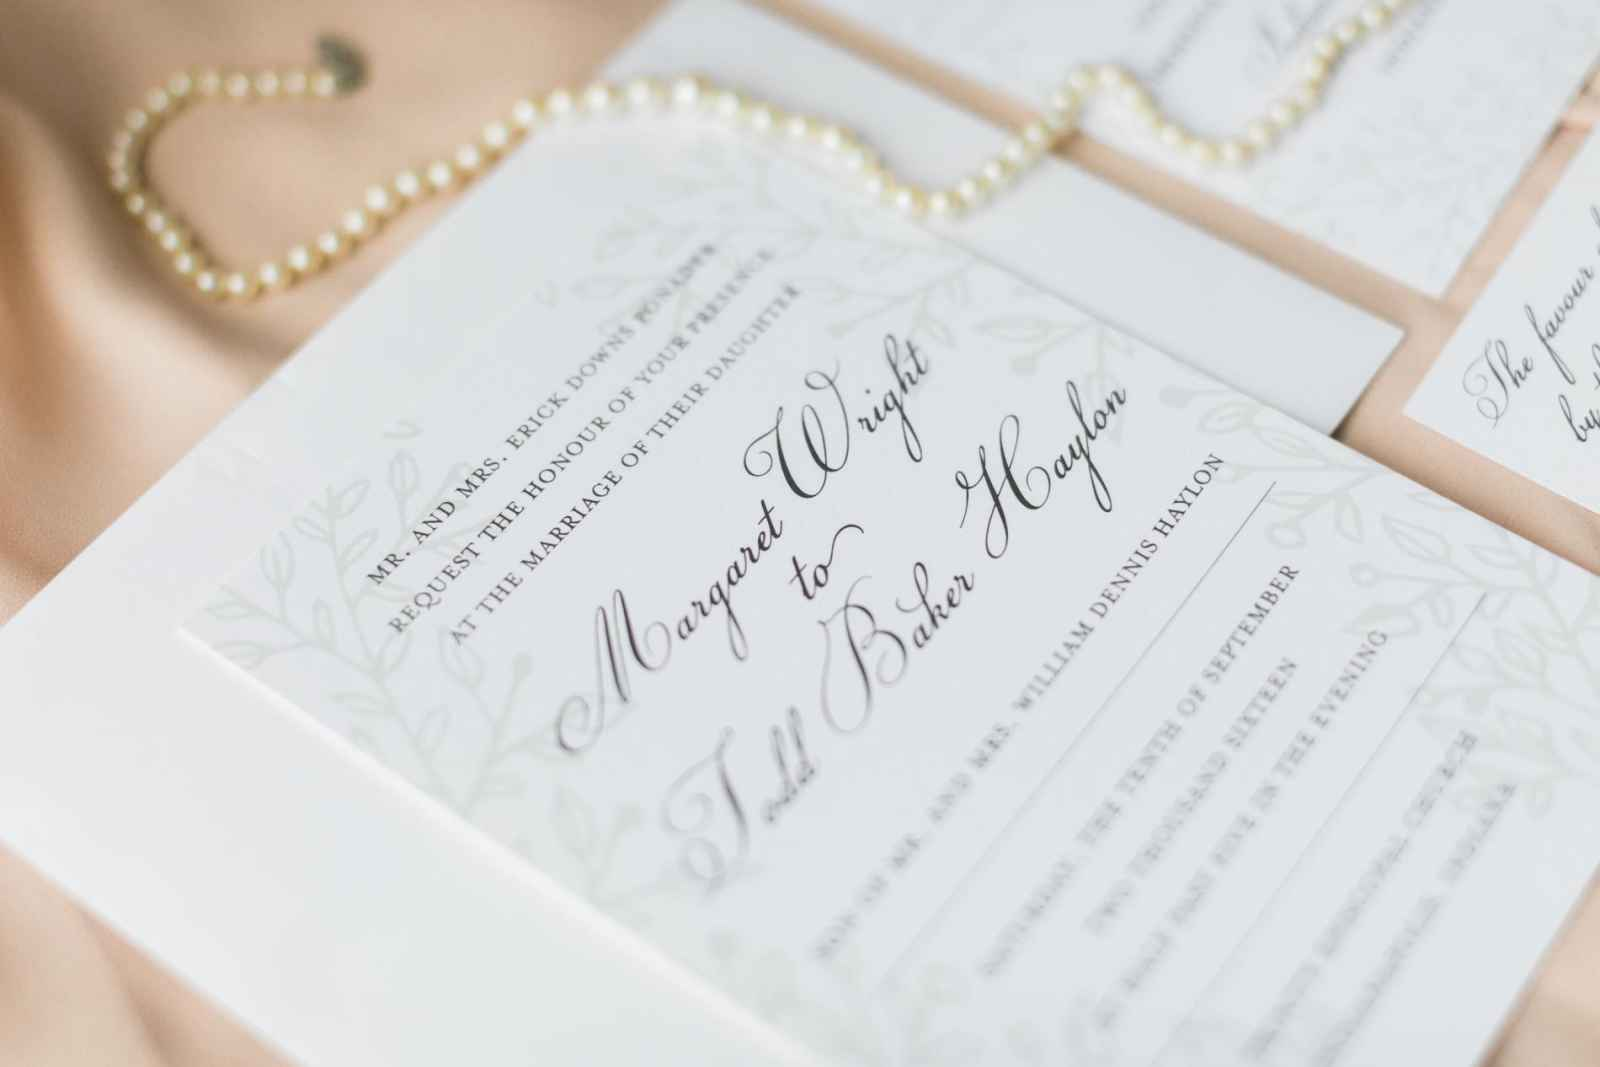 Custom Or Ready Made Invitations Which Option Is The Best Fit For